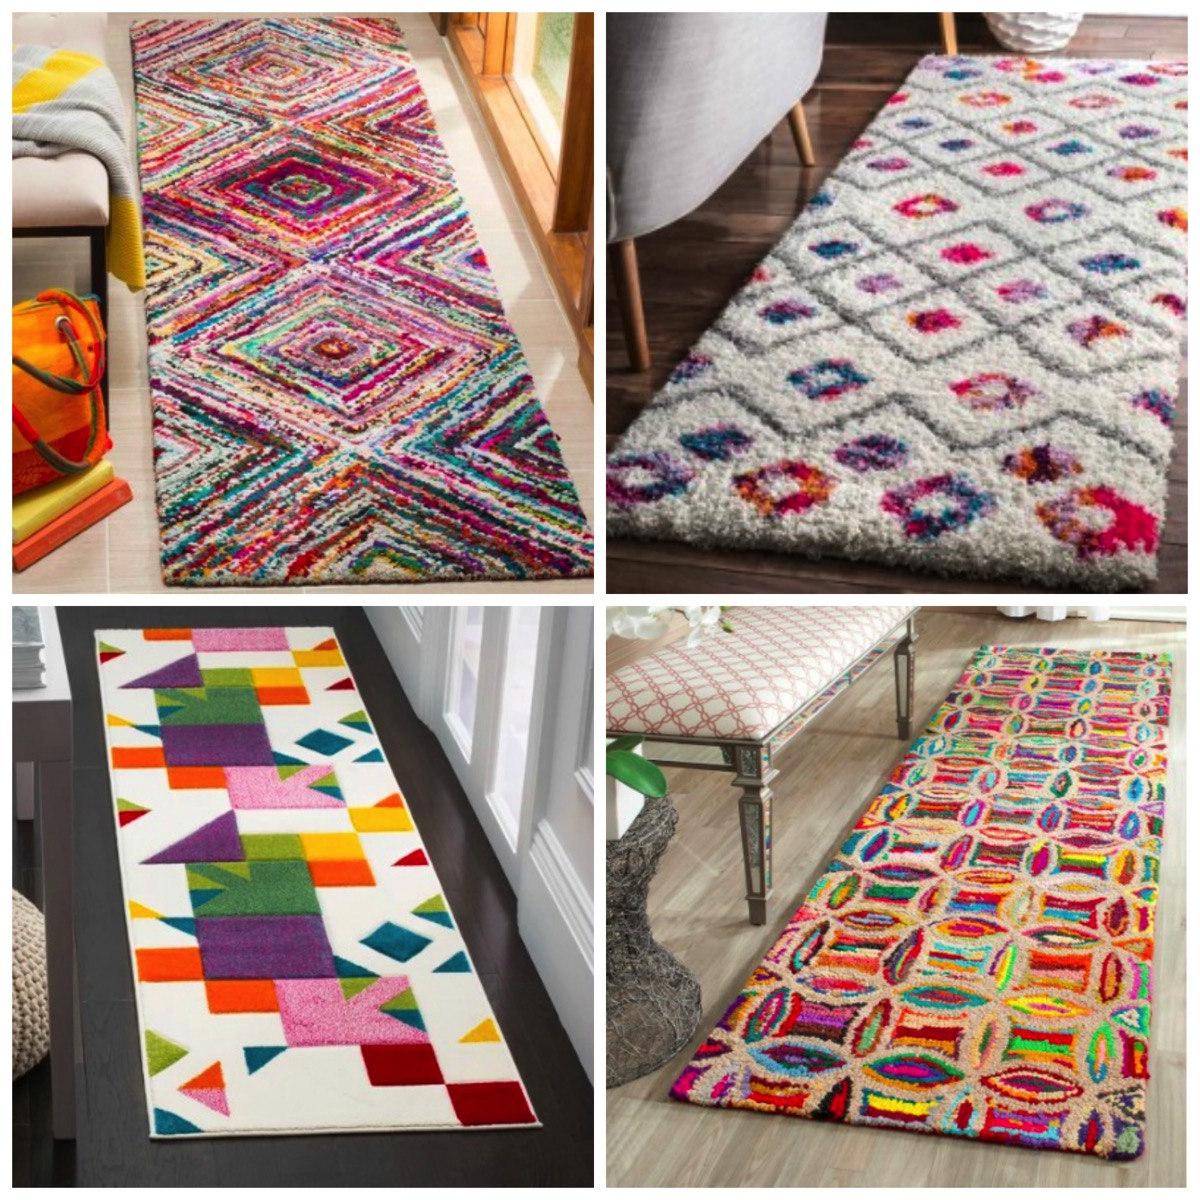 Most colorful vibrant and unique runner area rugs for home